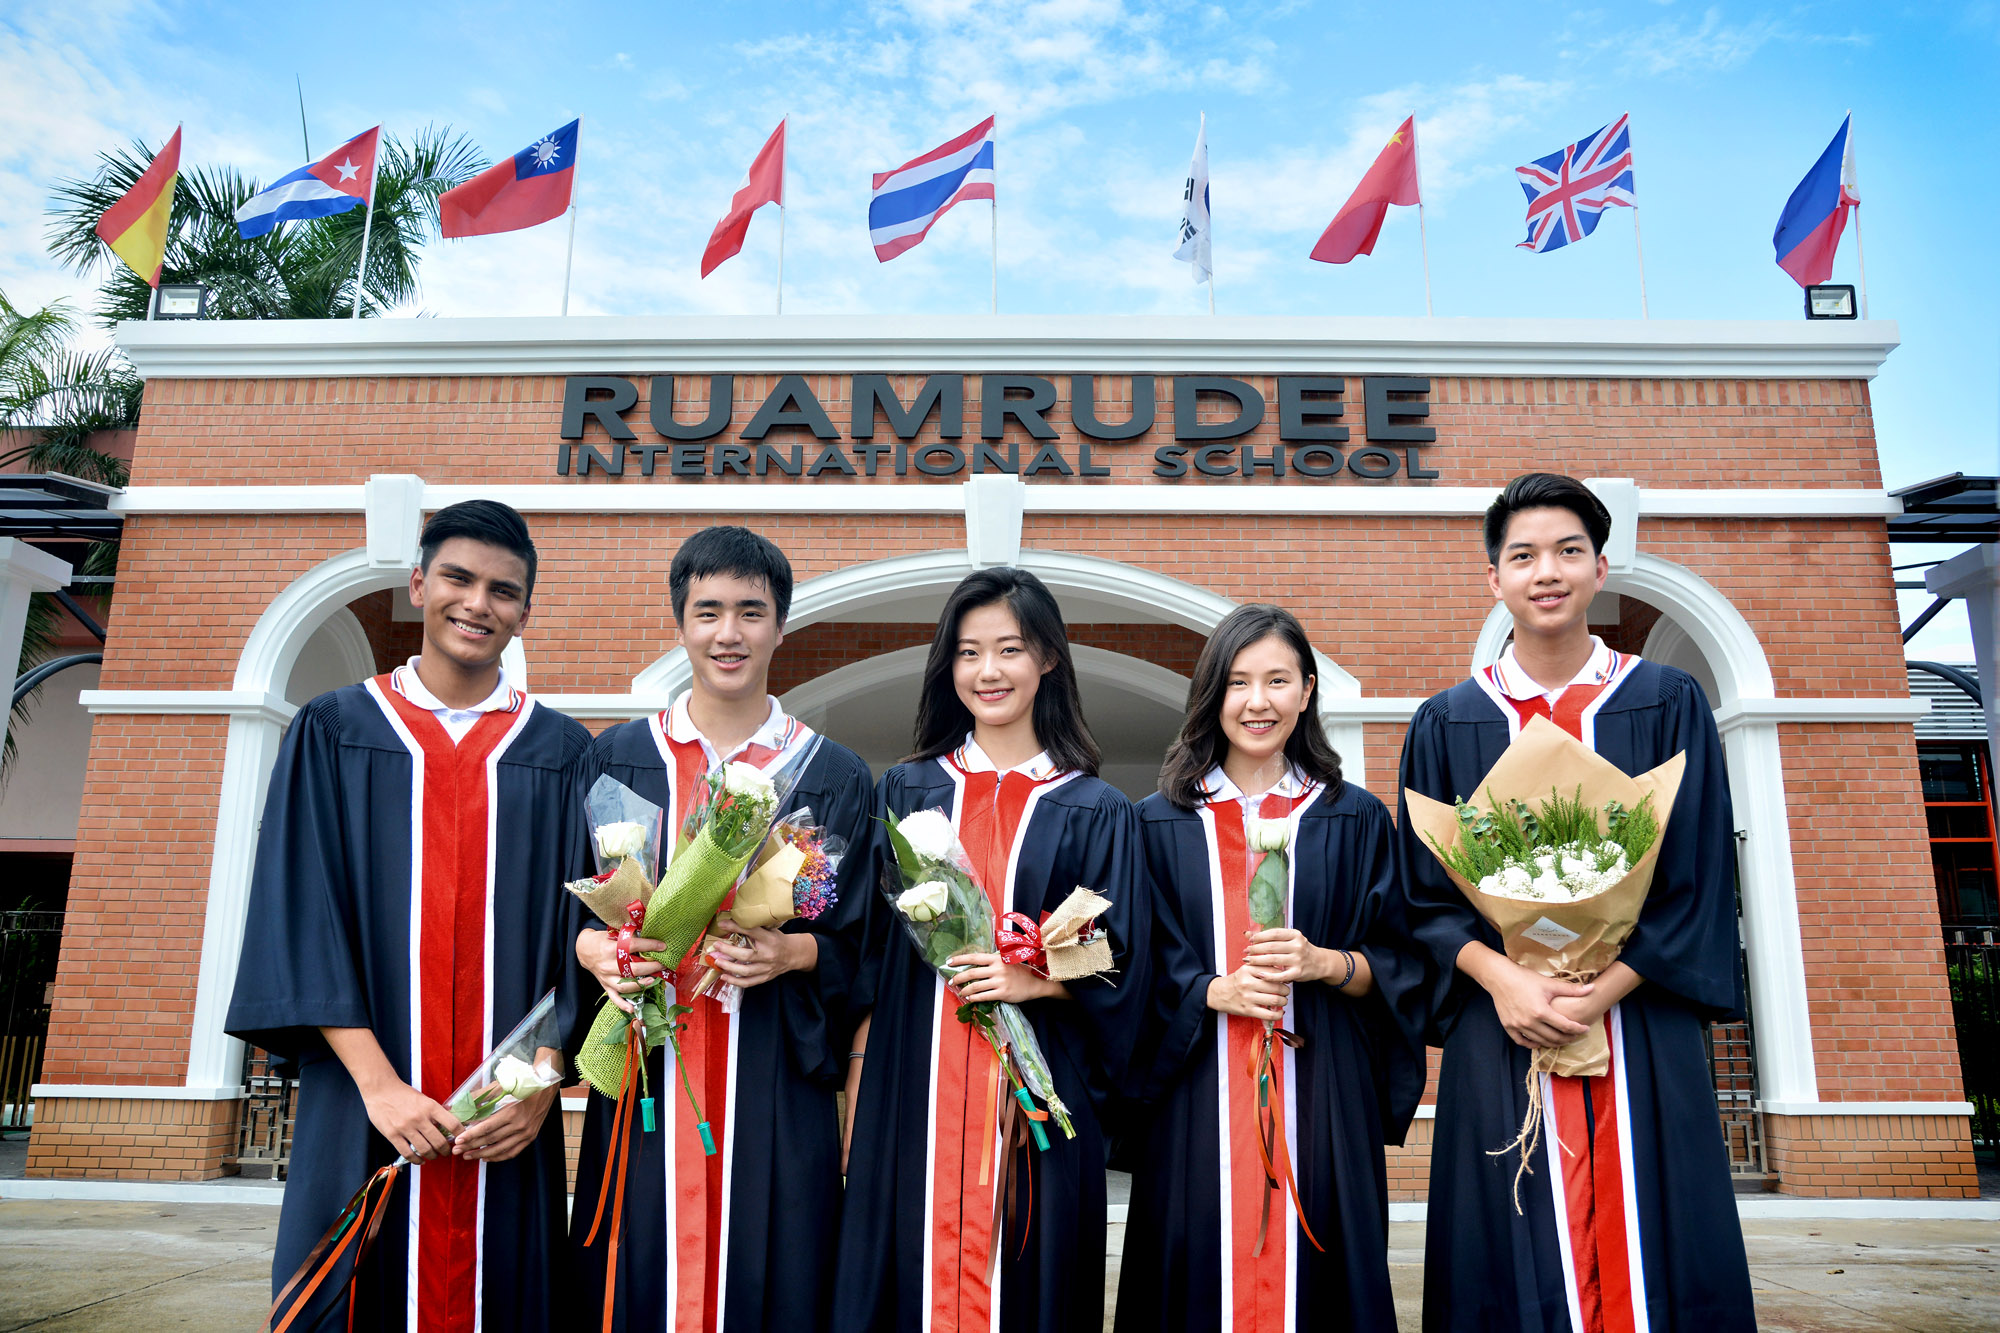 ruamrudee-international-school-bangkok